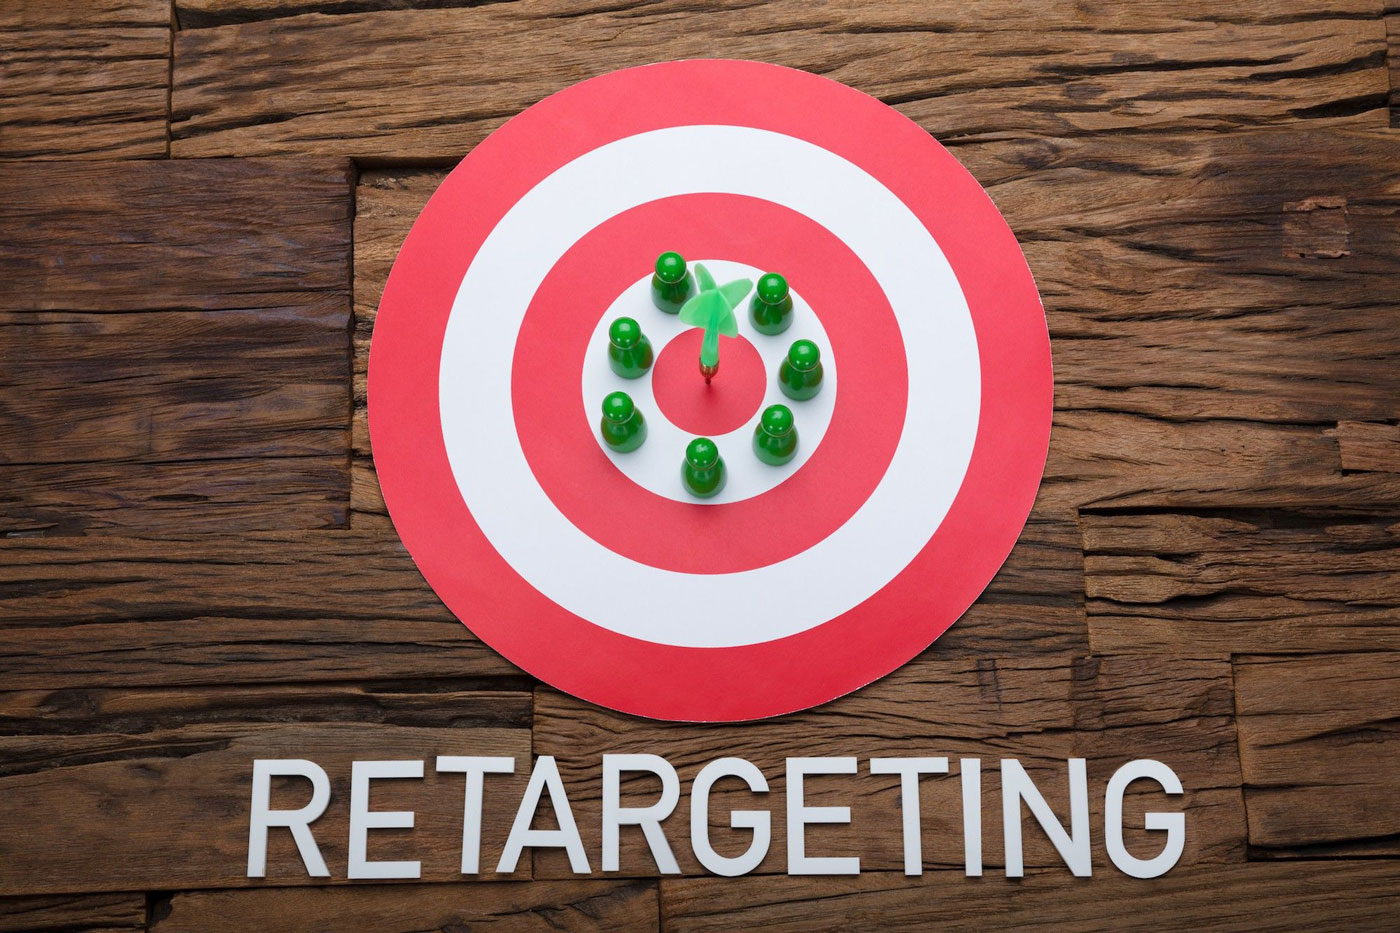 Arrow And Pawn Figurines On Dartboard With Retargeting Text